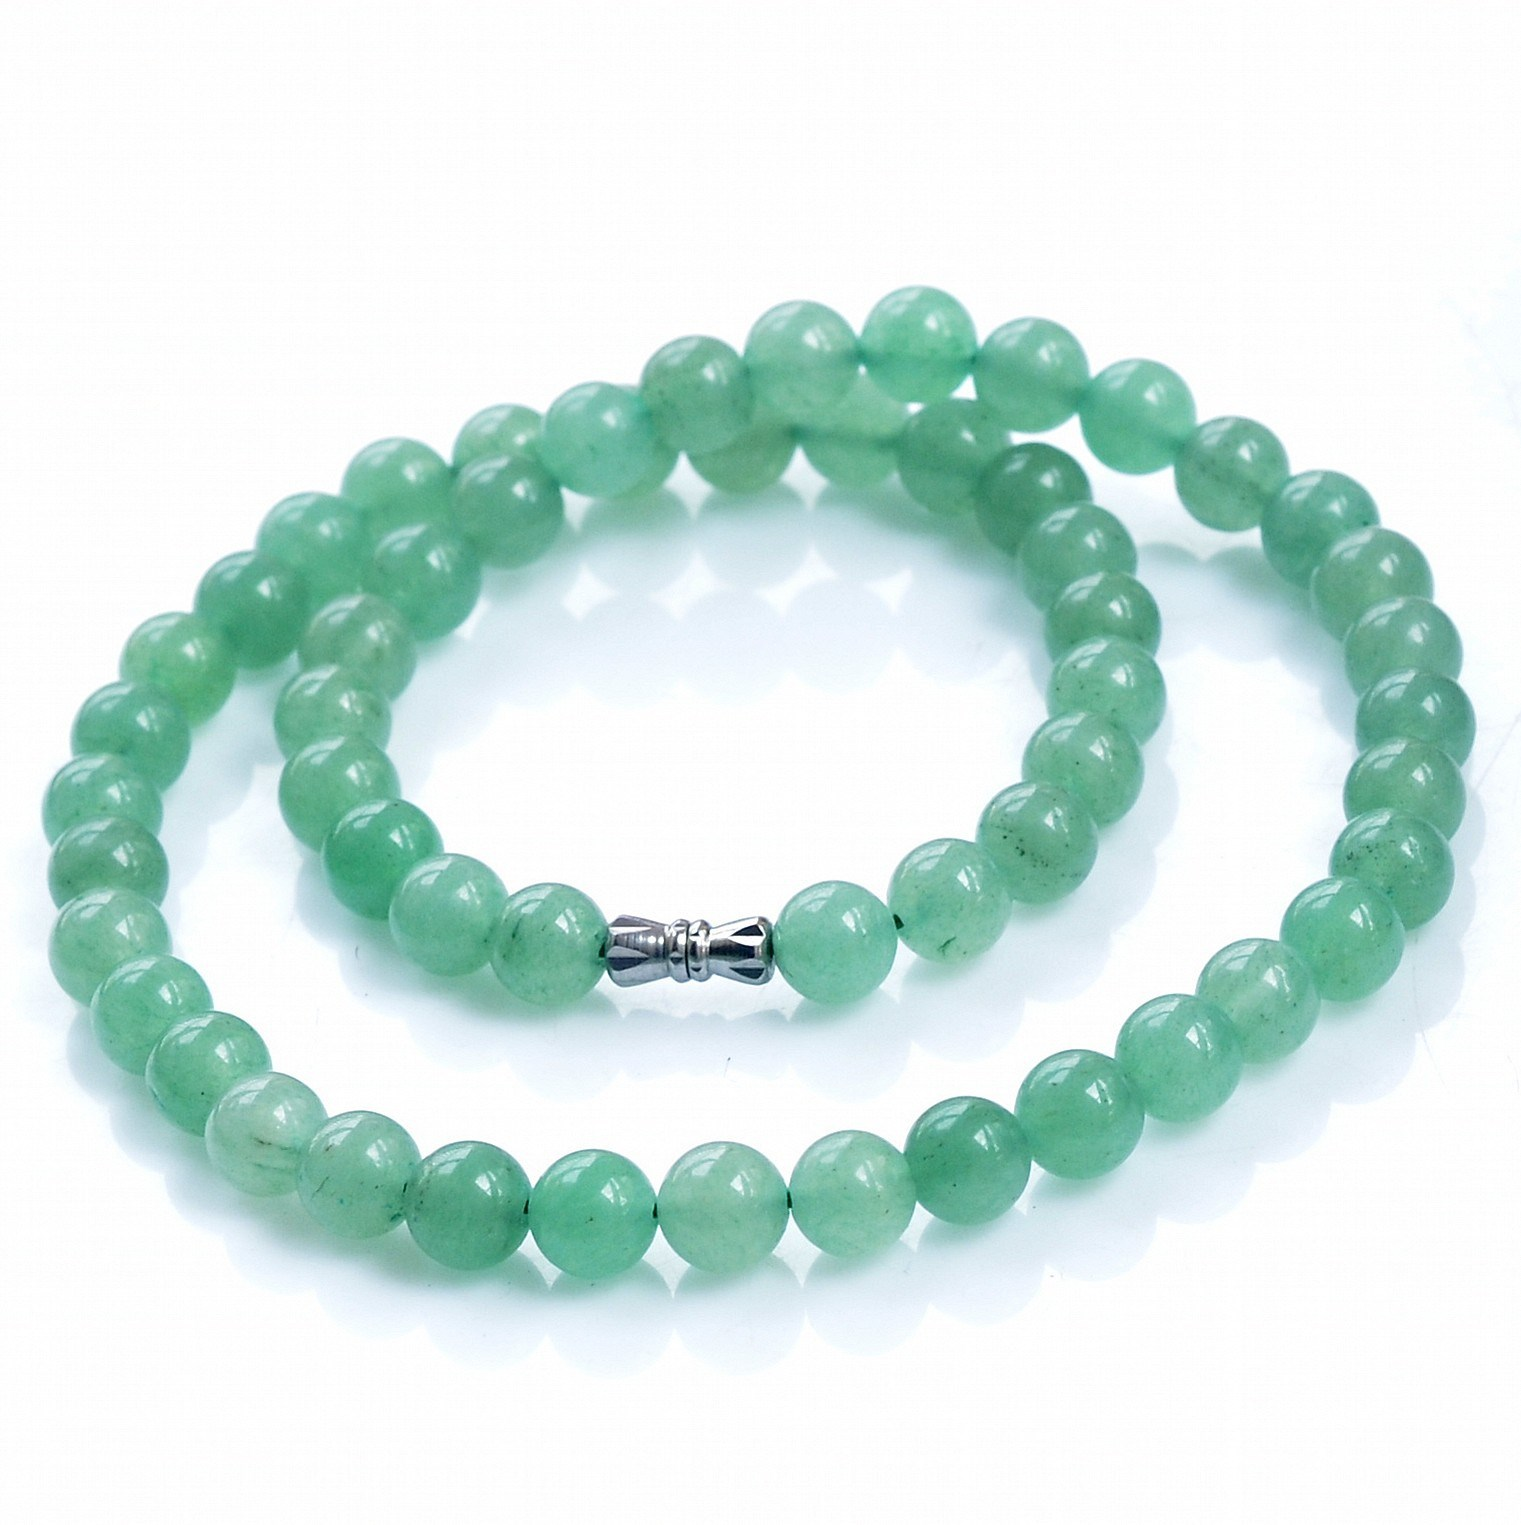 [identification certificate] natural Dongling jade necklace Dongling jade round bead flat chain jade necklace gem necklace